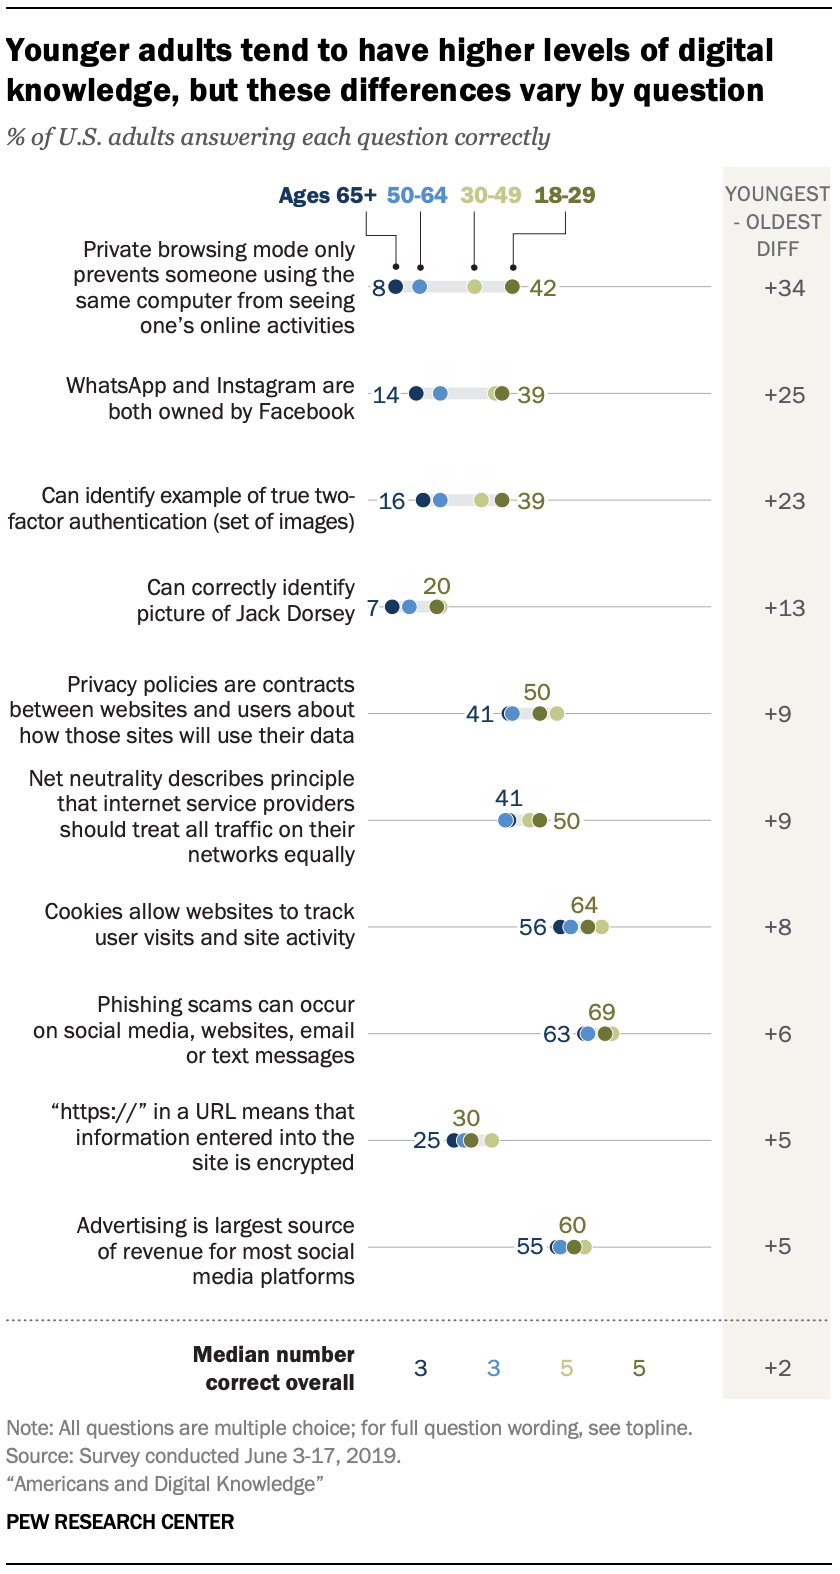 Younger adults tend to have higher levels of digital knowledge, but these differences vary by question